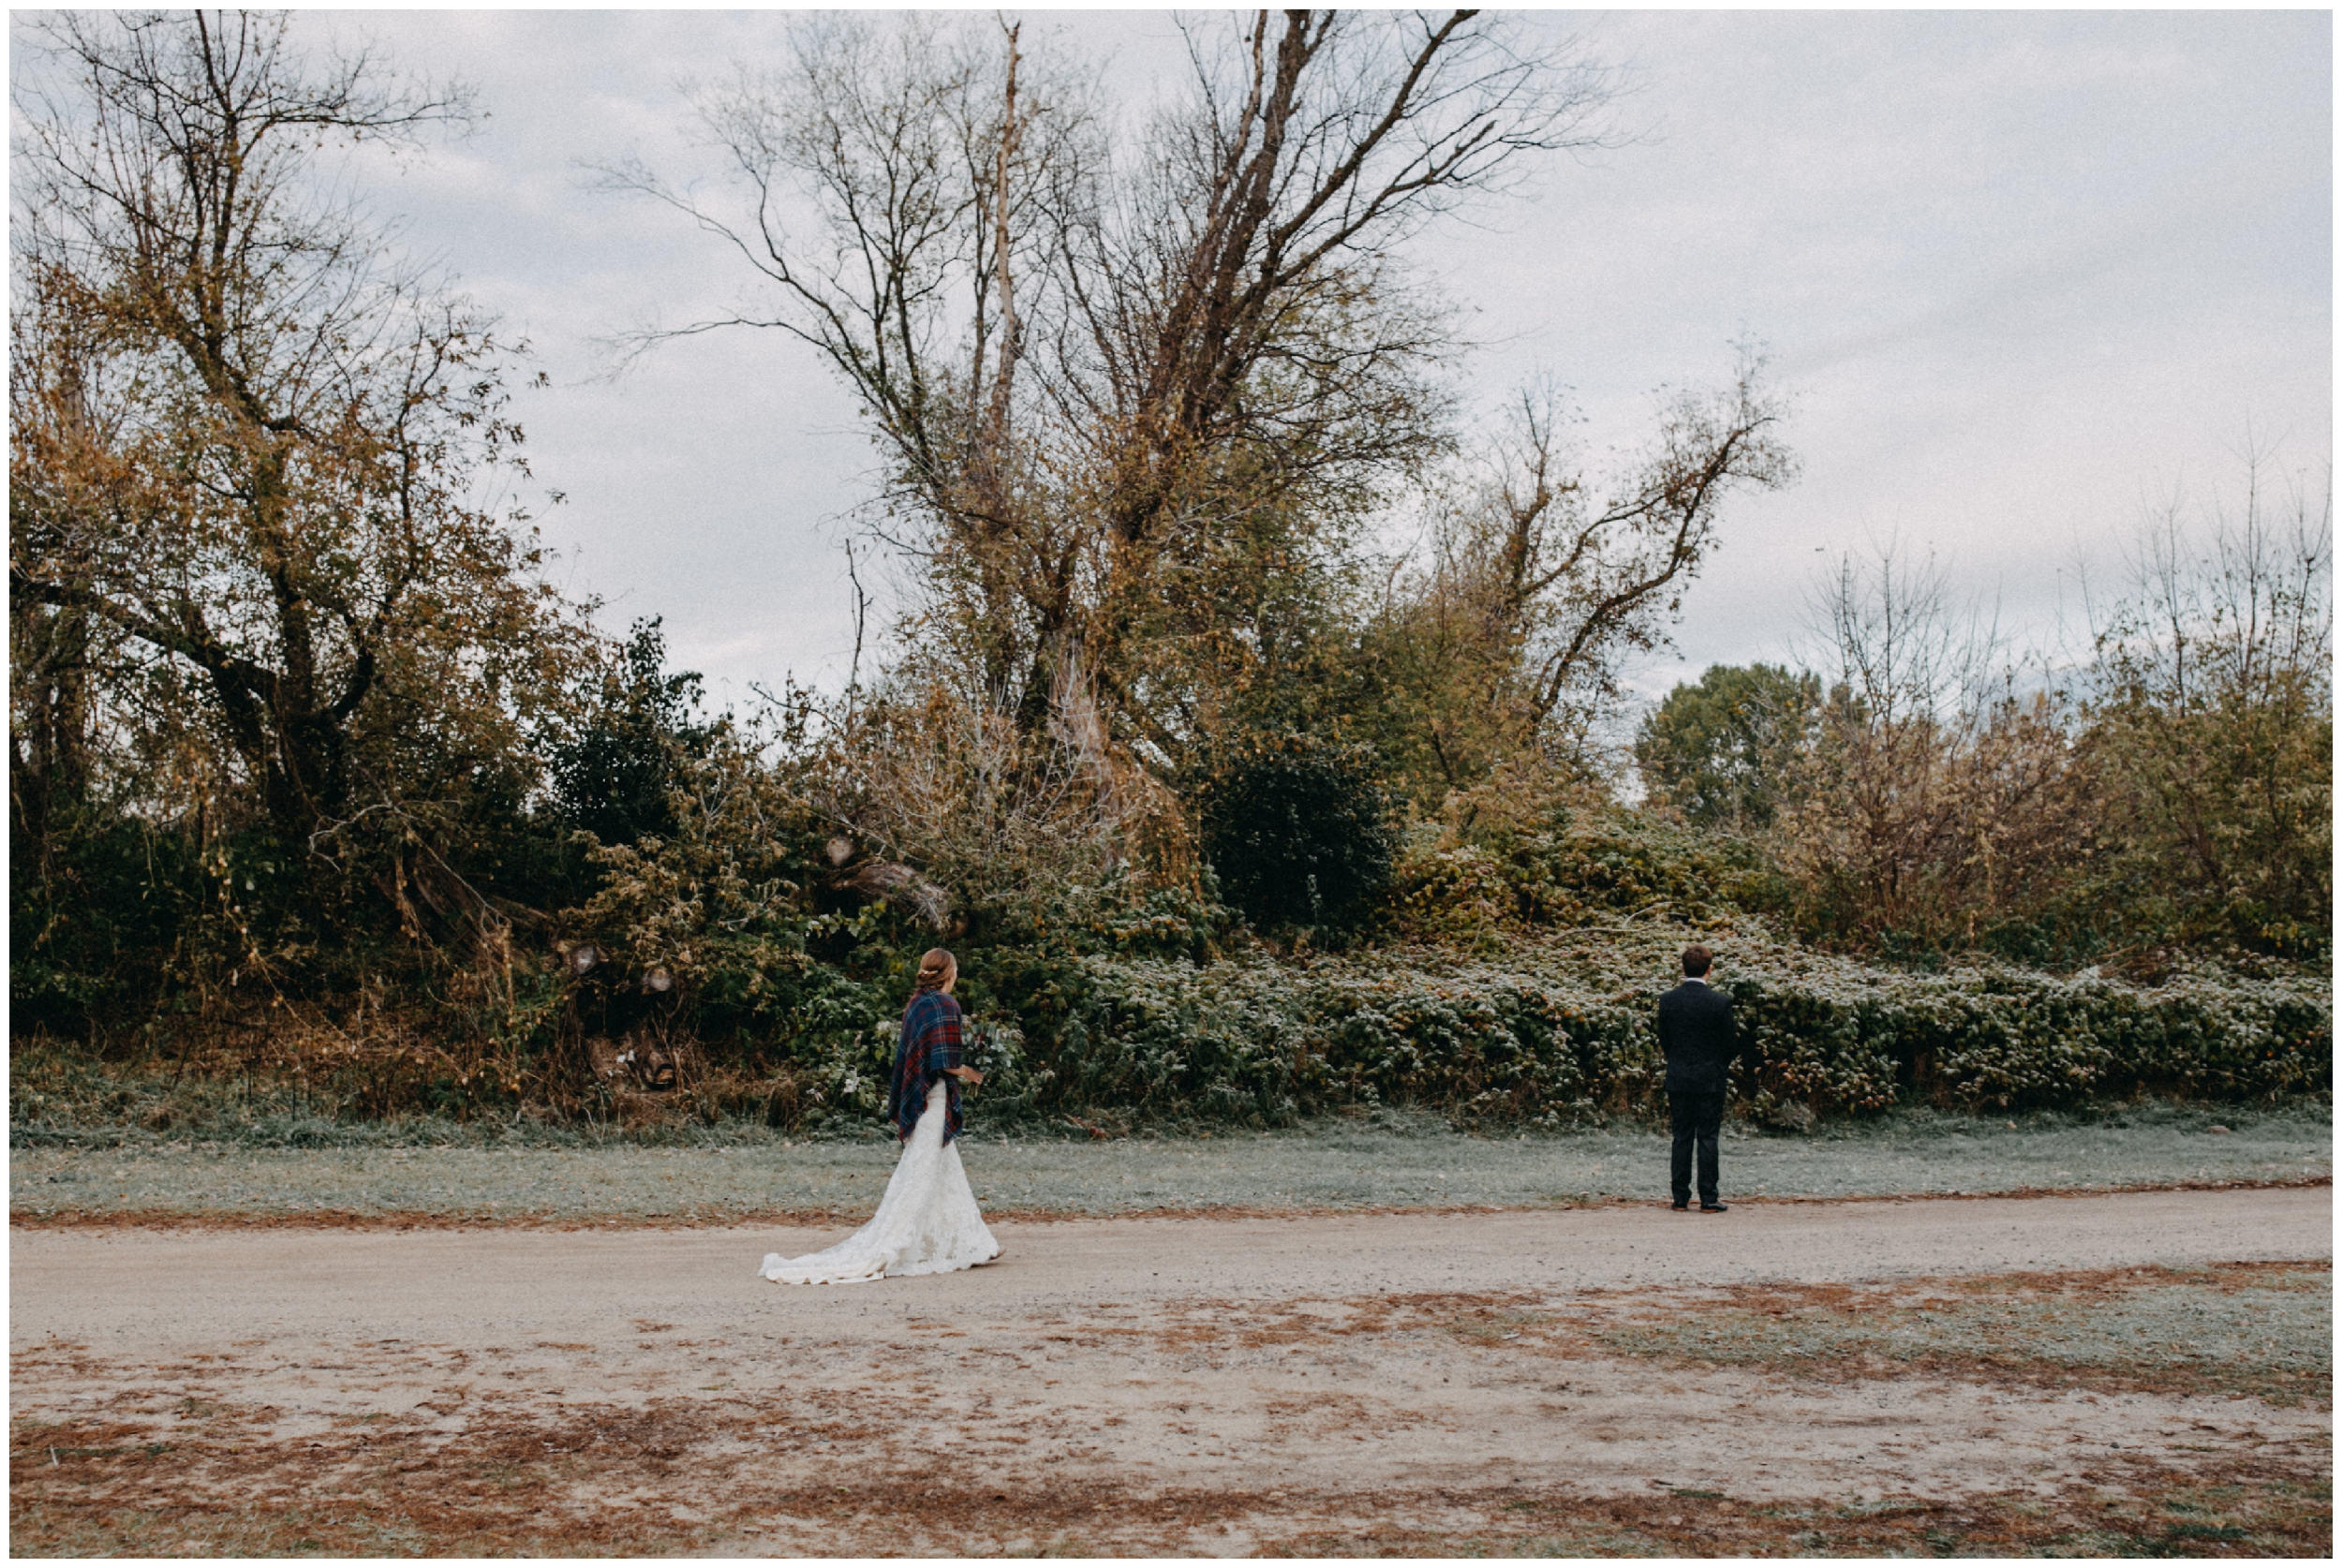 Frosty fall morning wedding at the Northland Arboretum